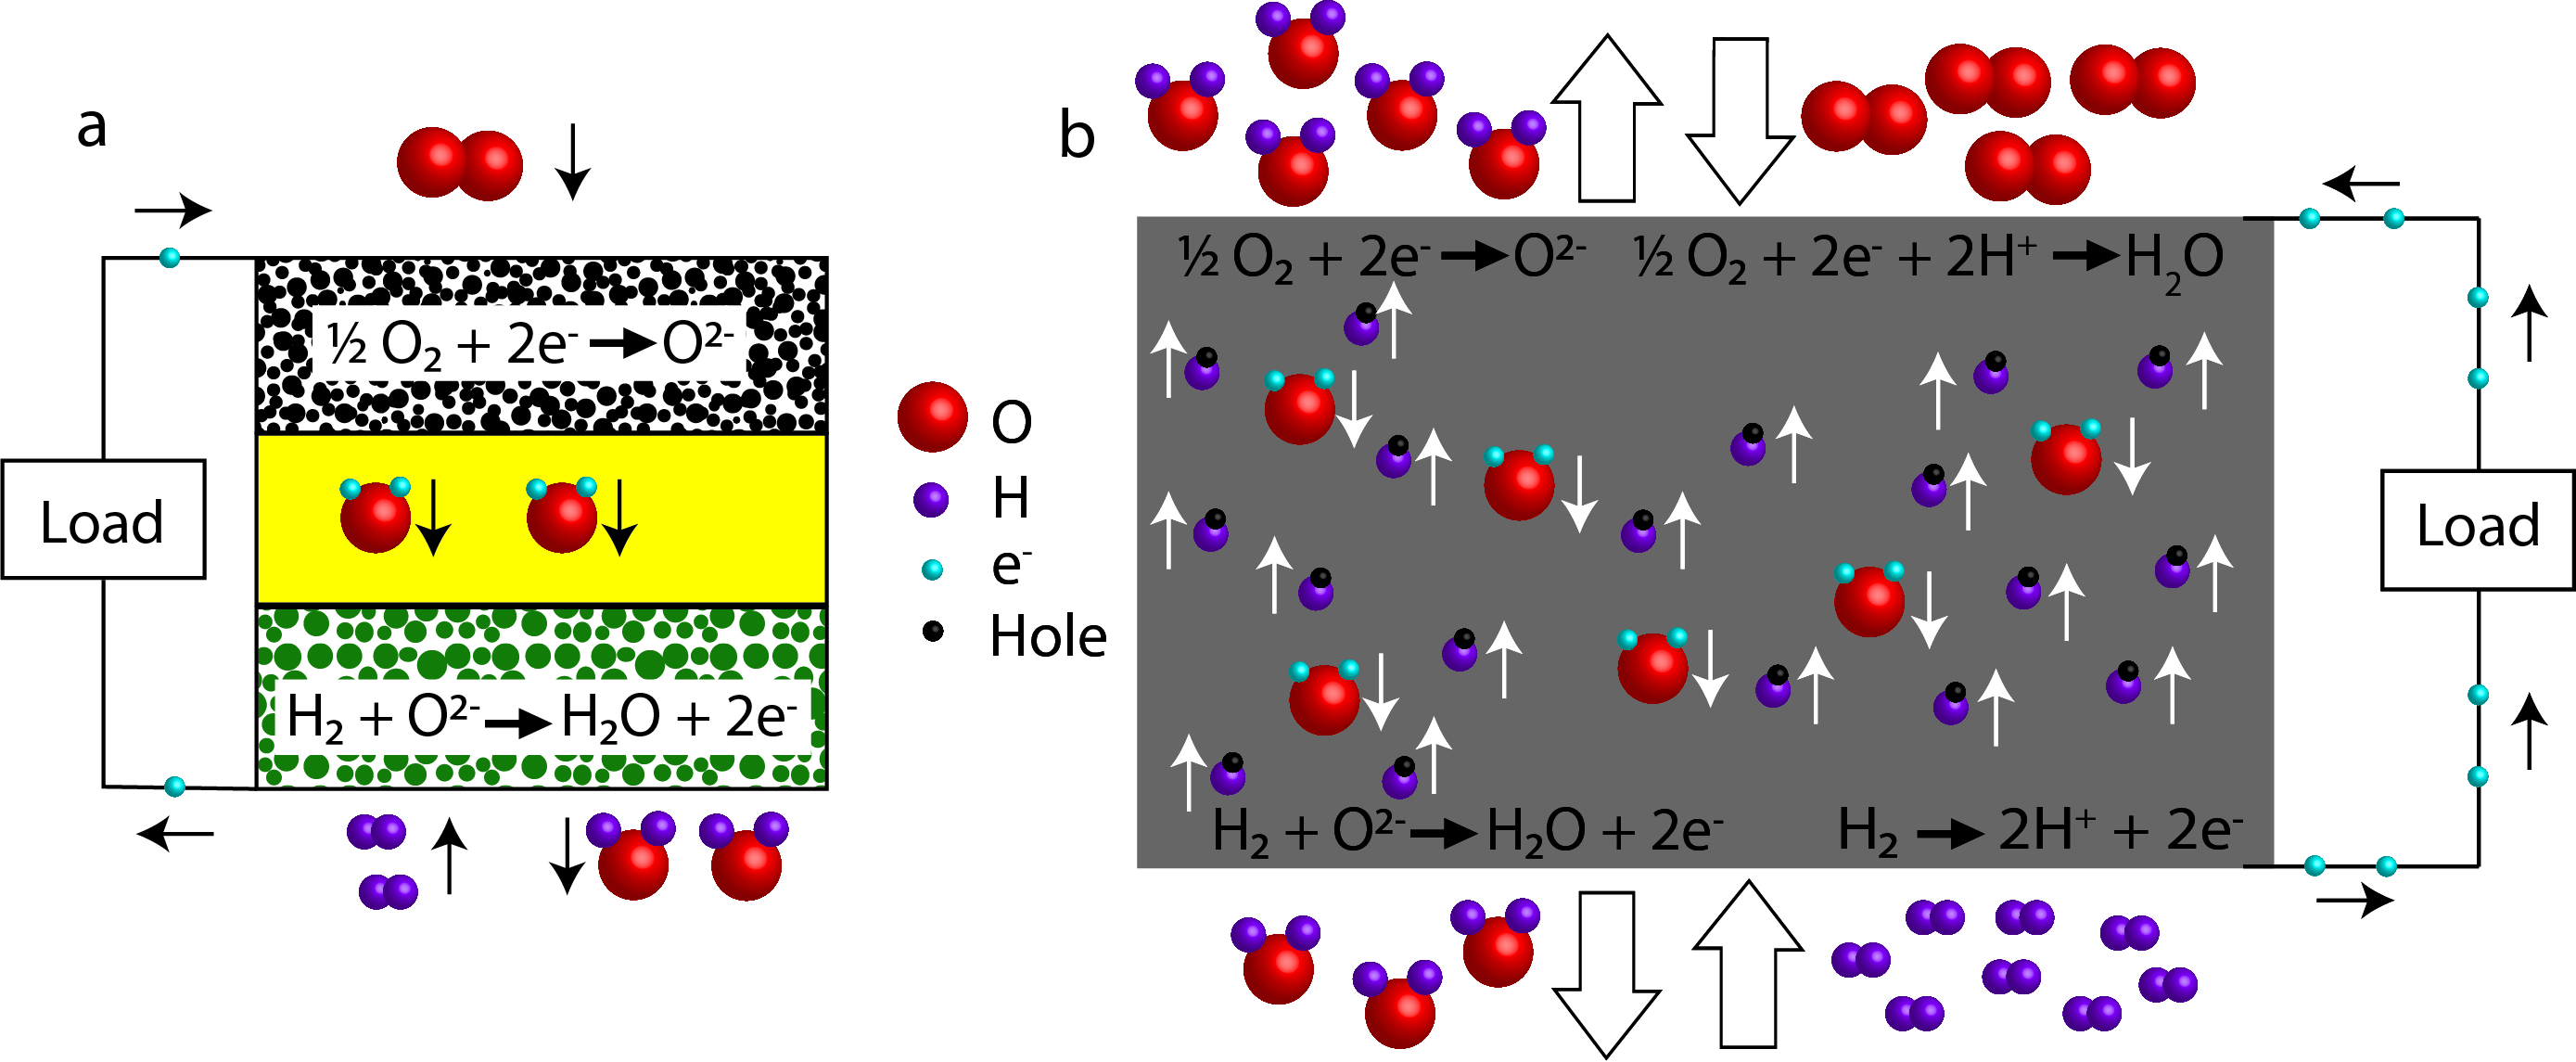 Carbonate dual-phase improves the ionic conductivity and